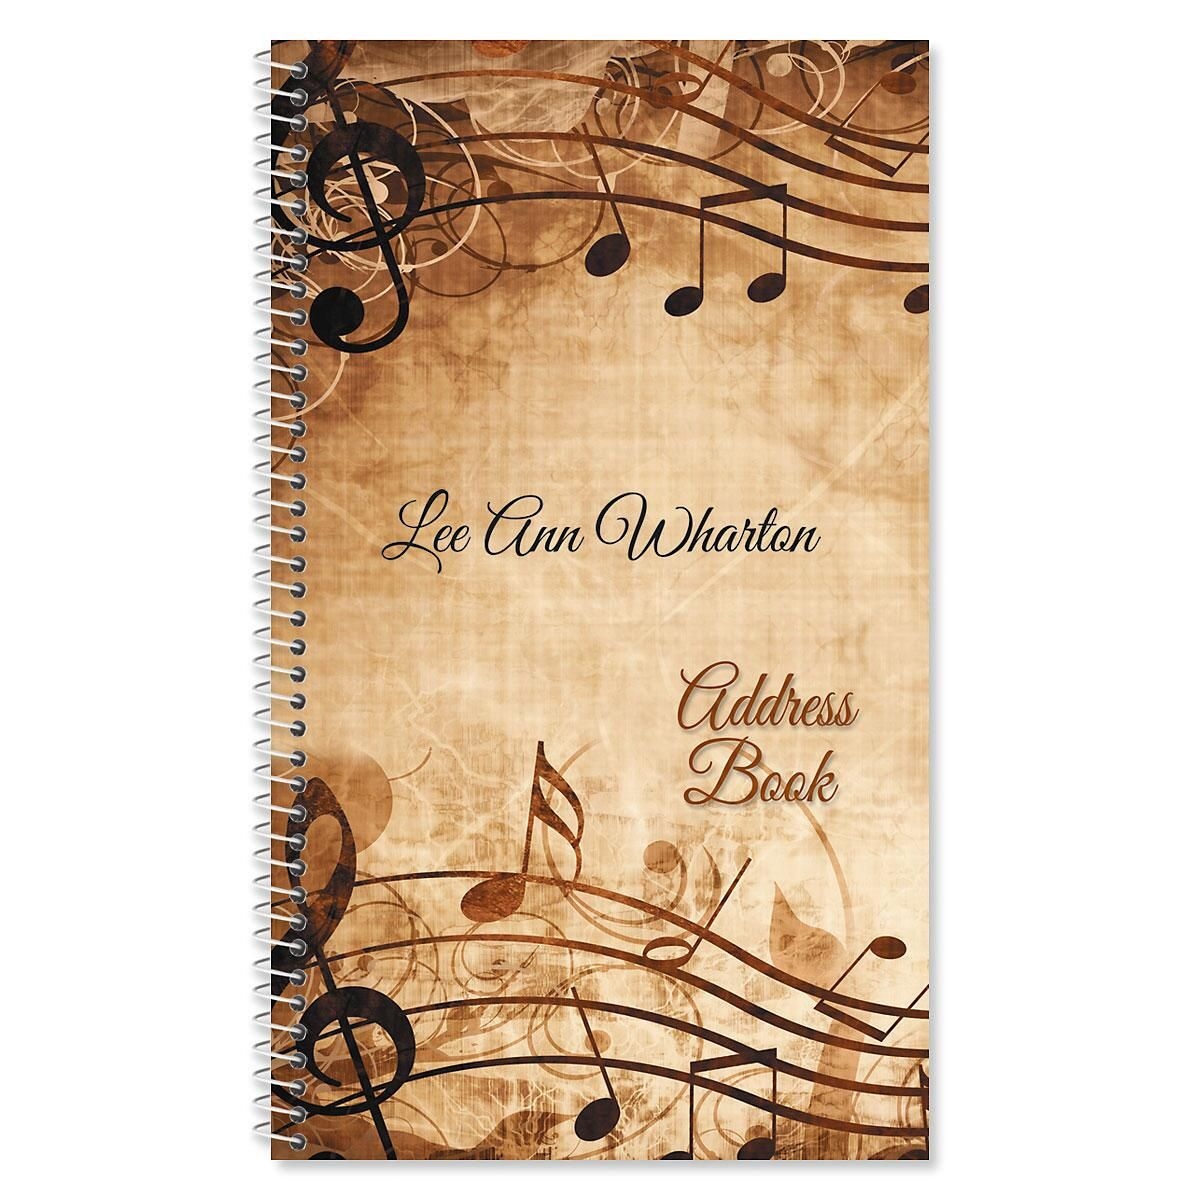 Sheet Music Personalized Lifetime Address Book